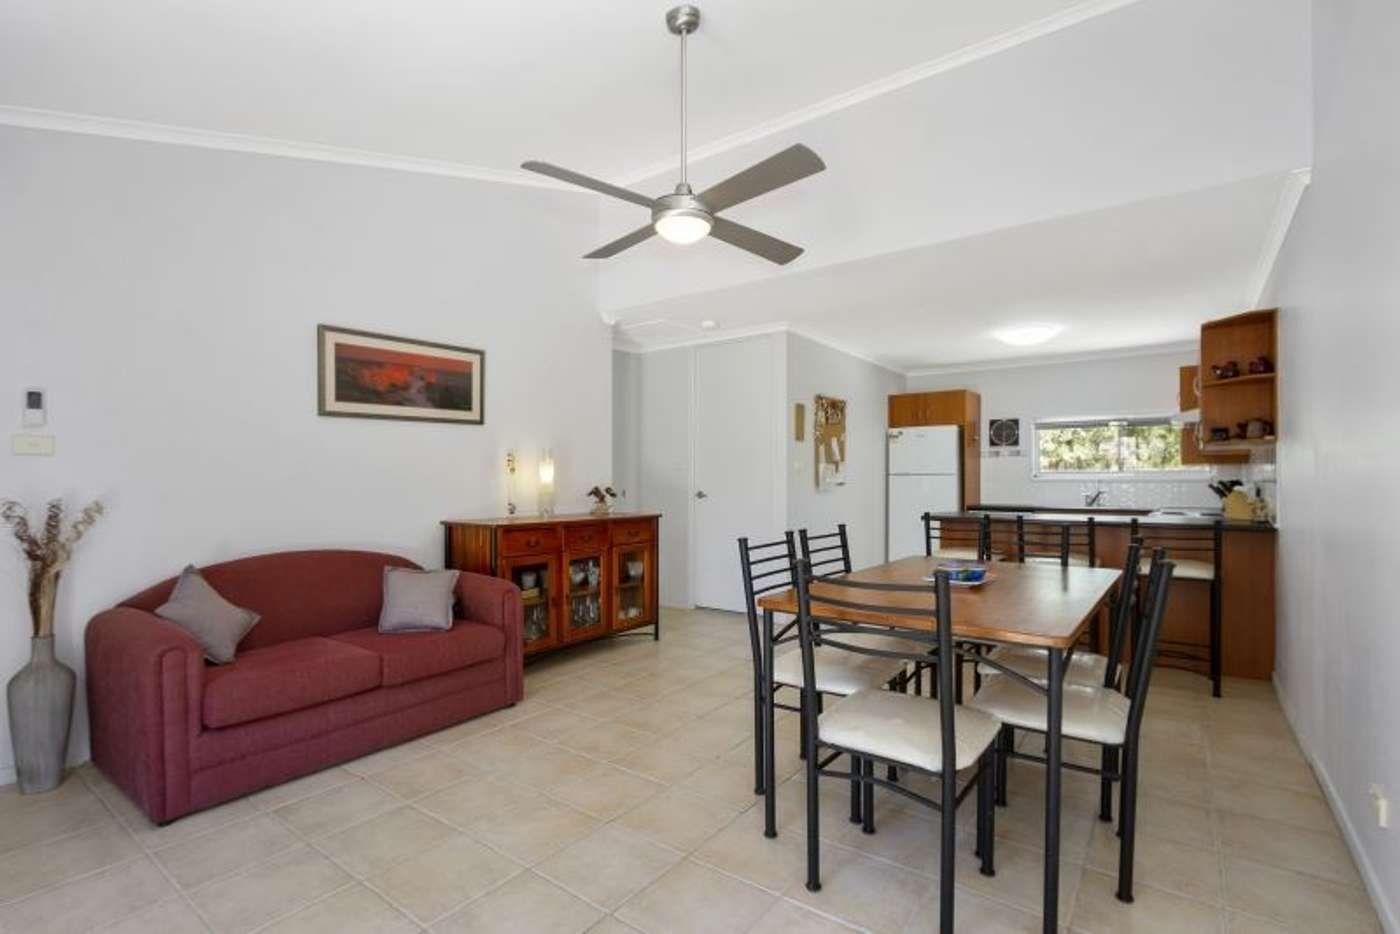 Sixth view of Homely house listing, 8 Thorne Street, Lake Conjola NSW 2539